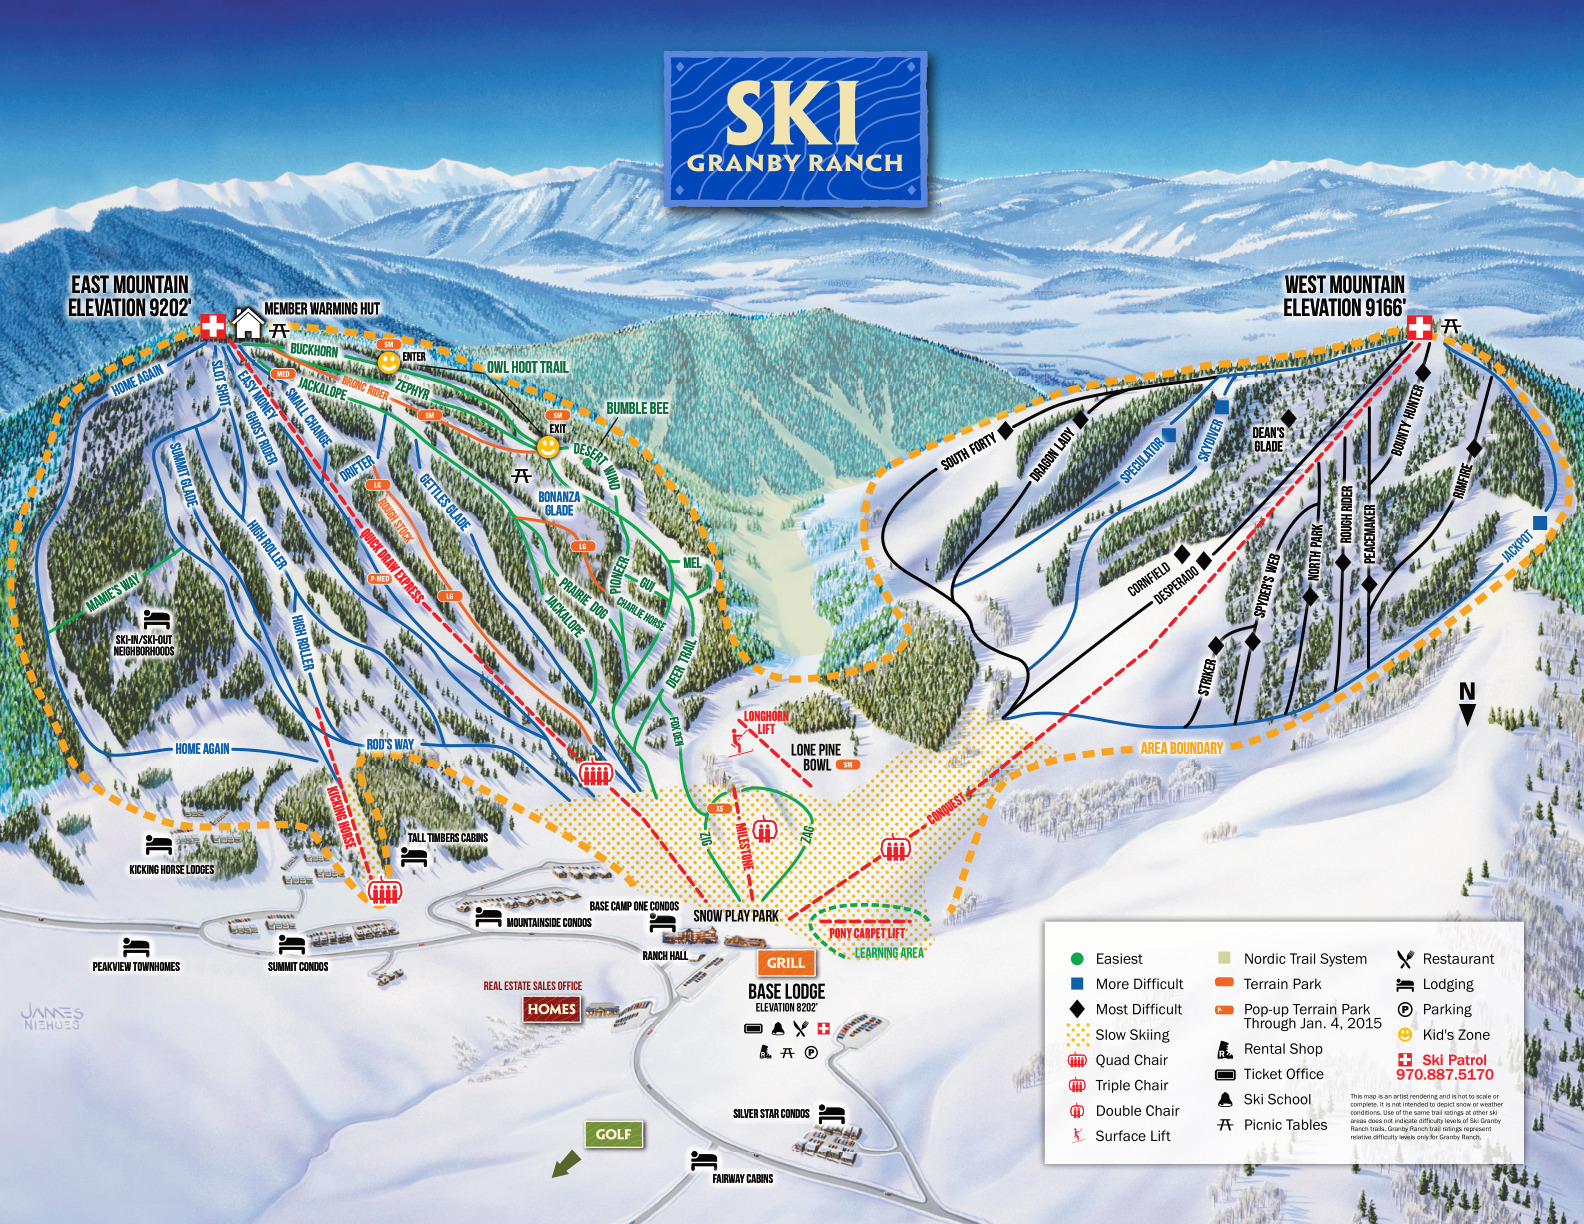 Ski Granby Ranch - SkiMap.org on cowiche canyon map, snow california map, snow united states map, snow mountain resort map, cross country ski park city map, big bend ranch state park map, contact us map,